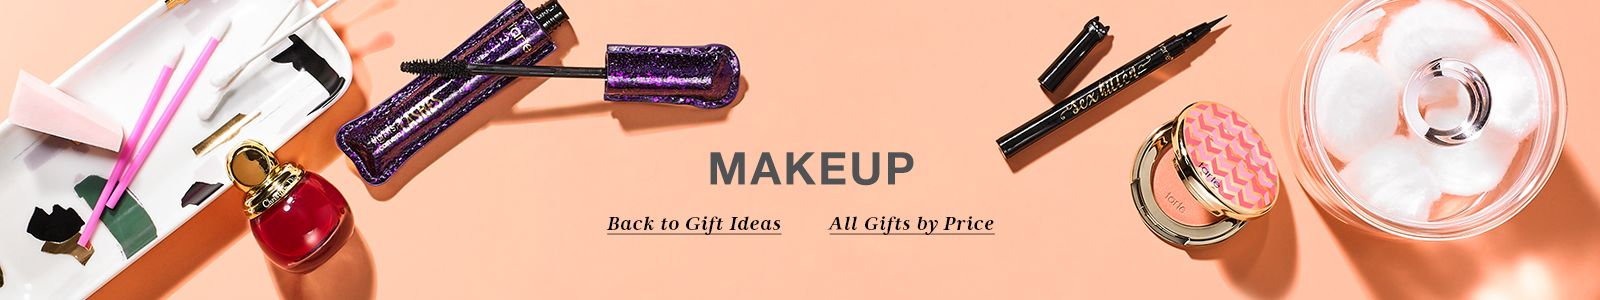 Makeup, Back to Gift Ideas, All Gifts by Price